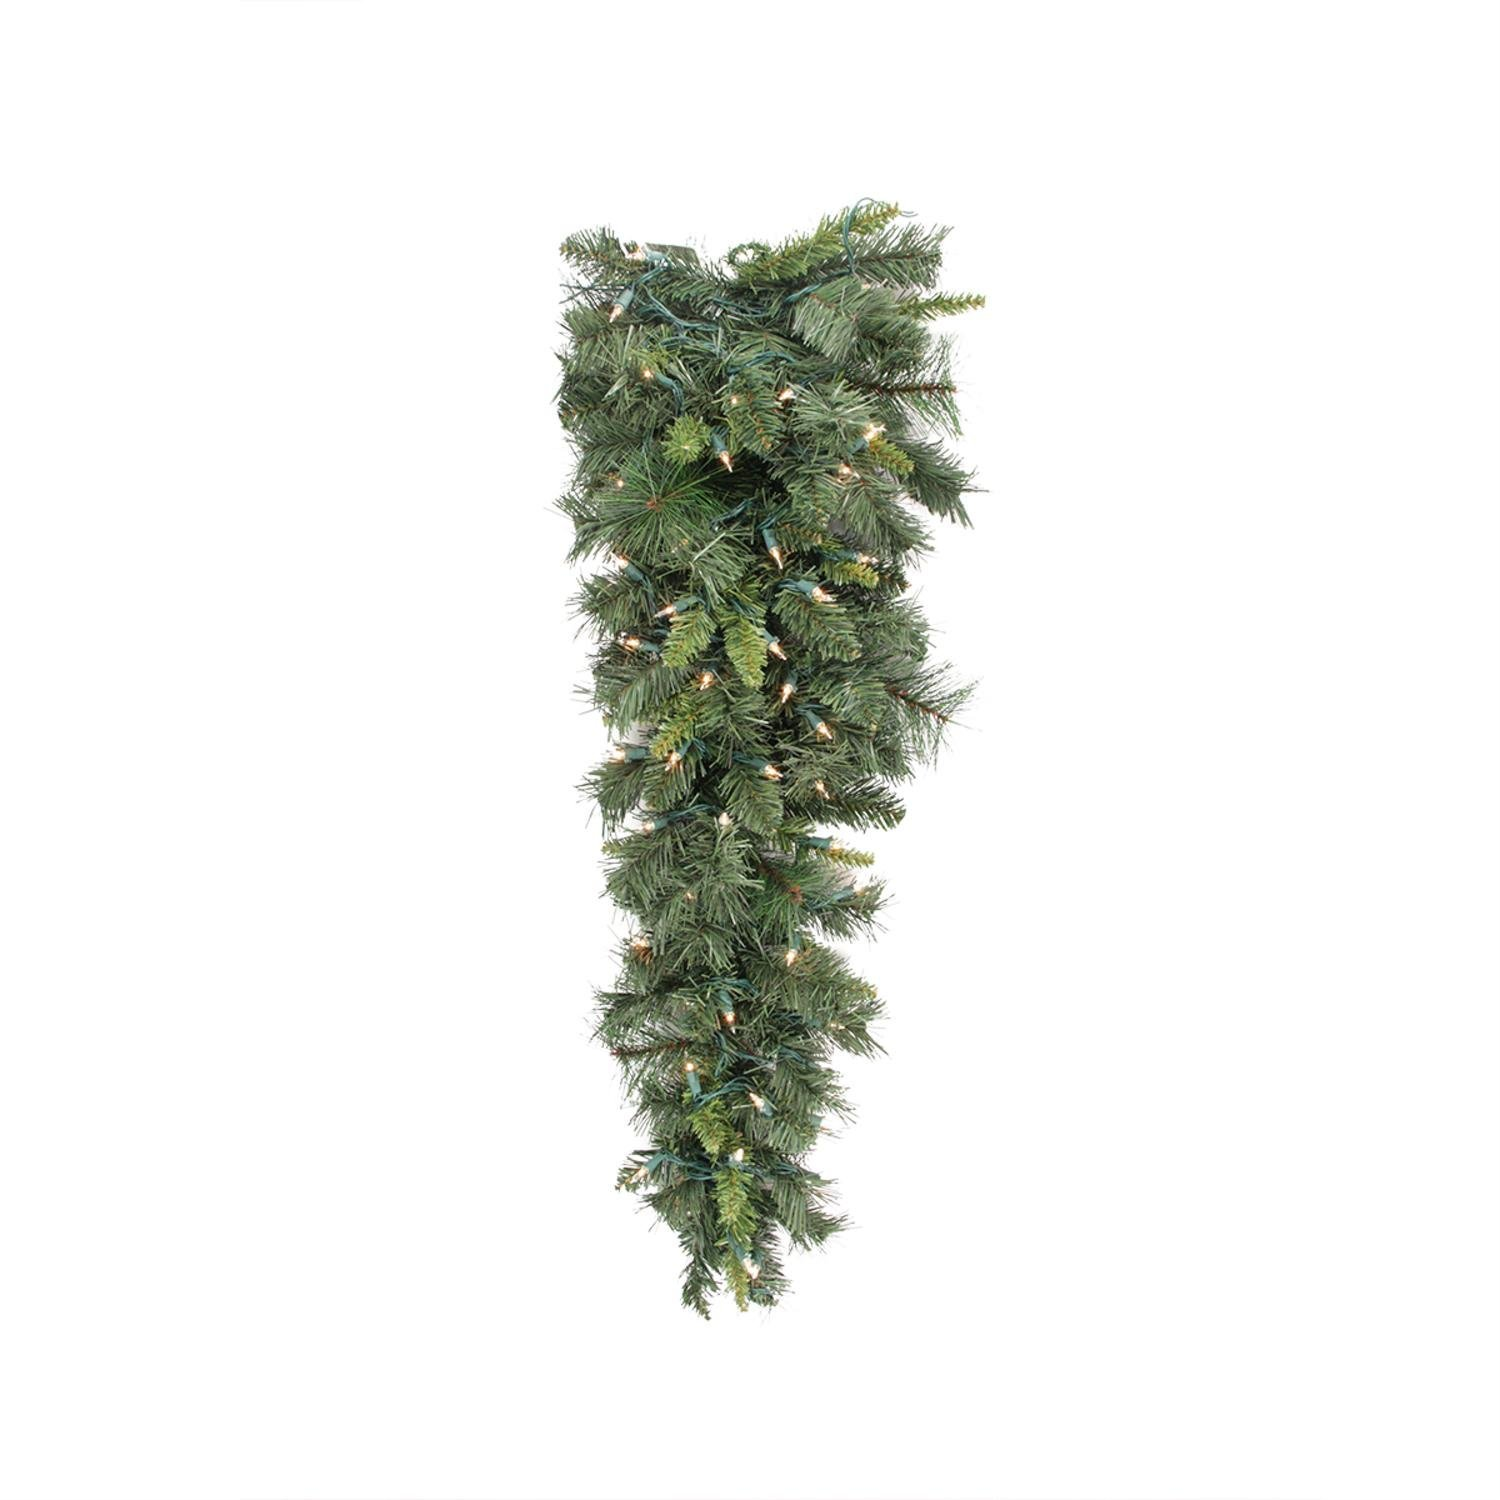 Allstate 36'' Pre-lit Mixed Long Needle Pine Artificial Christmas Teardrop Swag - Clear Lights